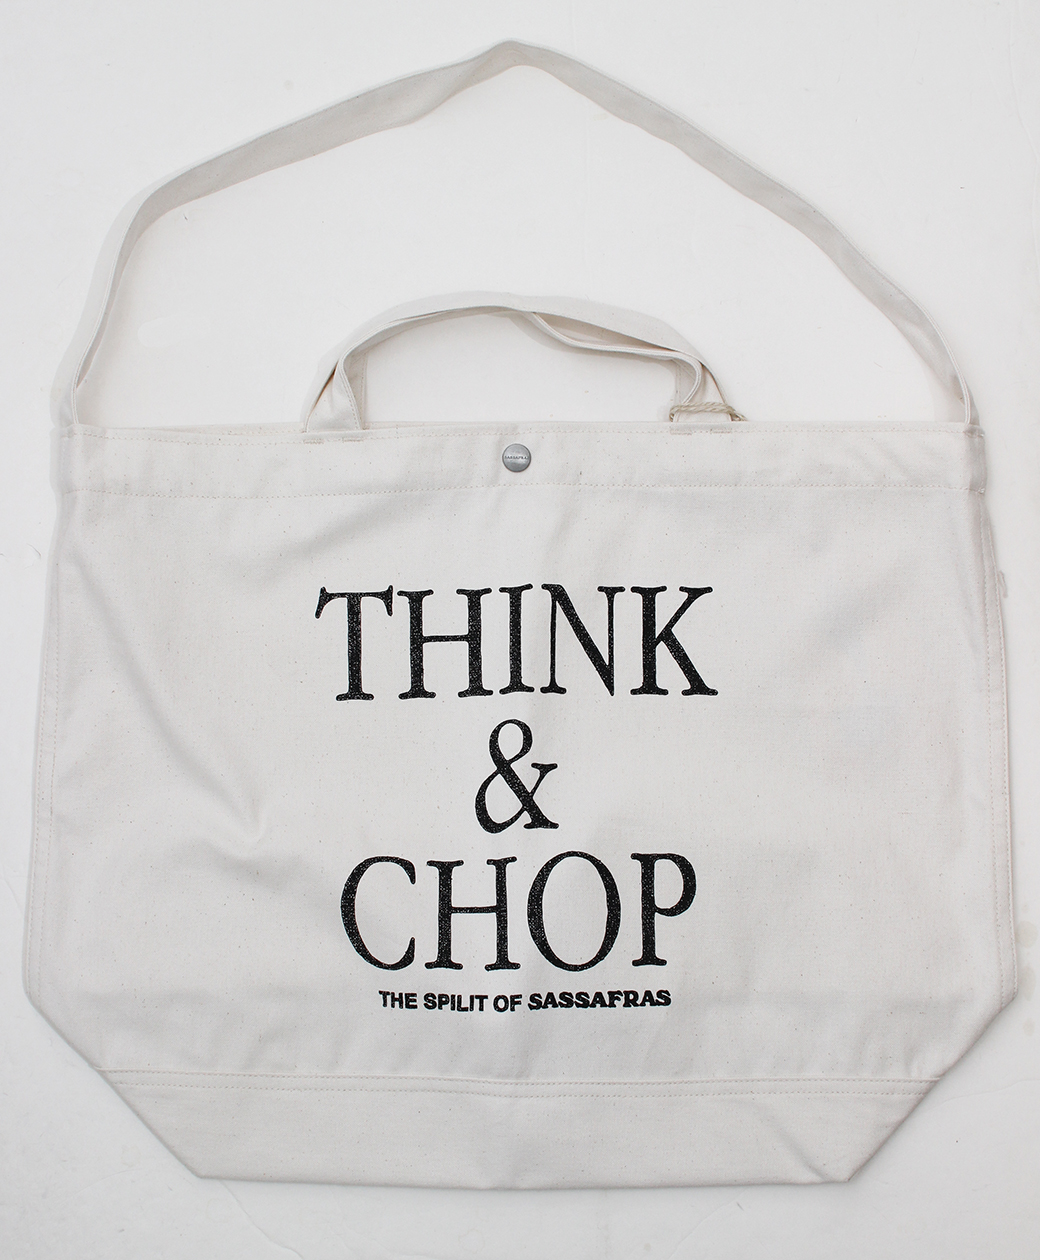 SASSAFRAS 【BRANCH別注】 Whole Tool Bag(THINK & CHOP)